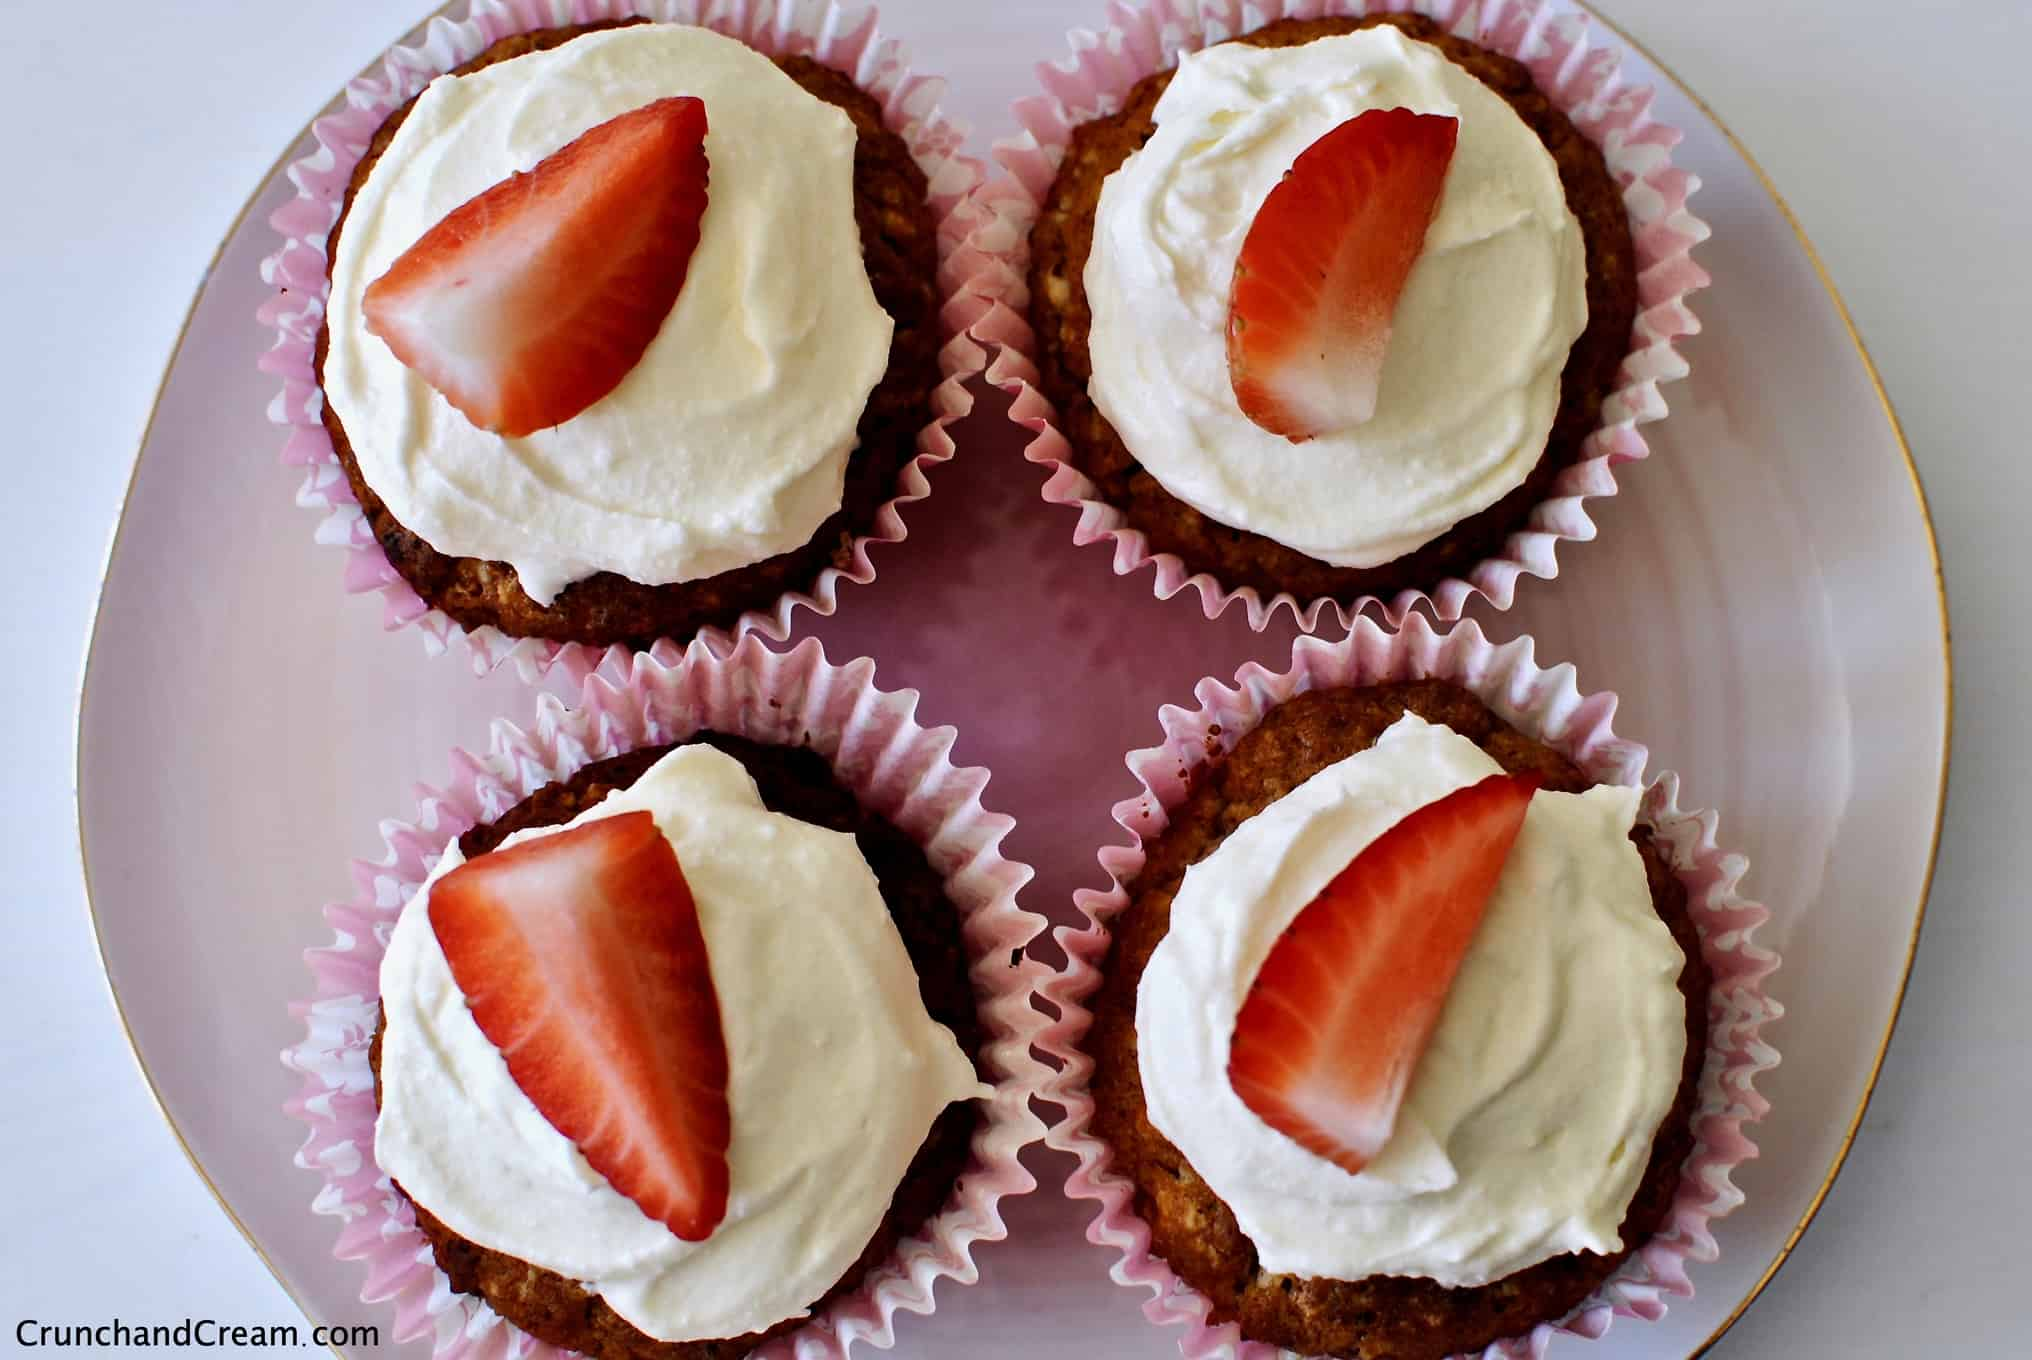 Overhead photo of 4 strawberry cupcakes topped with white chocolate cream cheese frosting and strawberry slices on a pale pink plate.